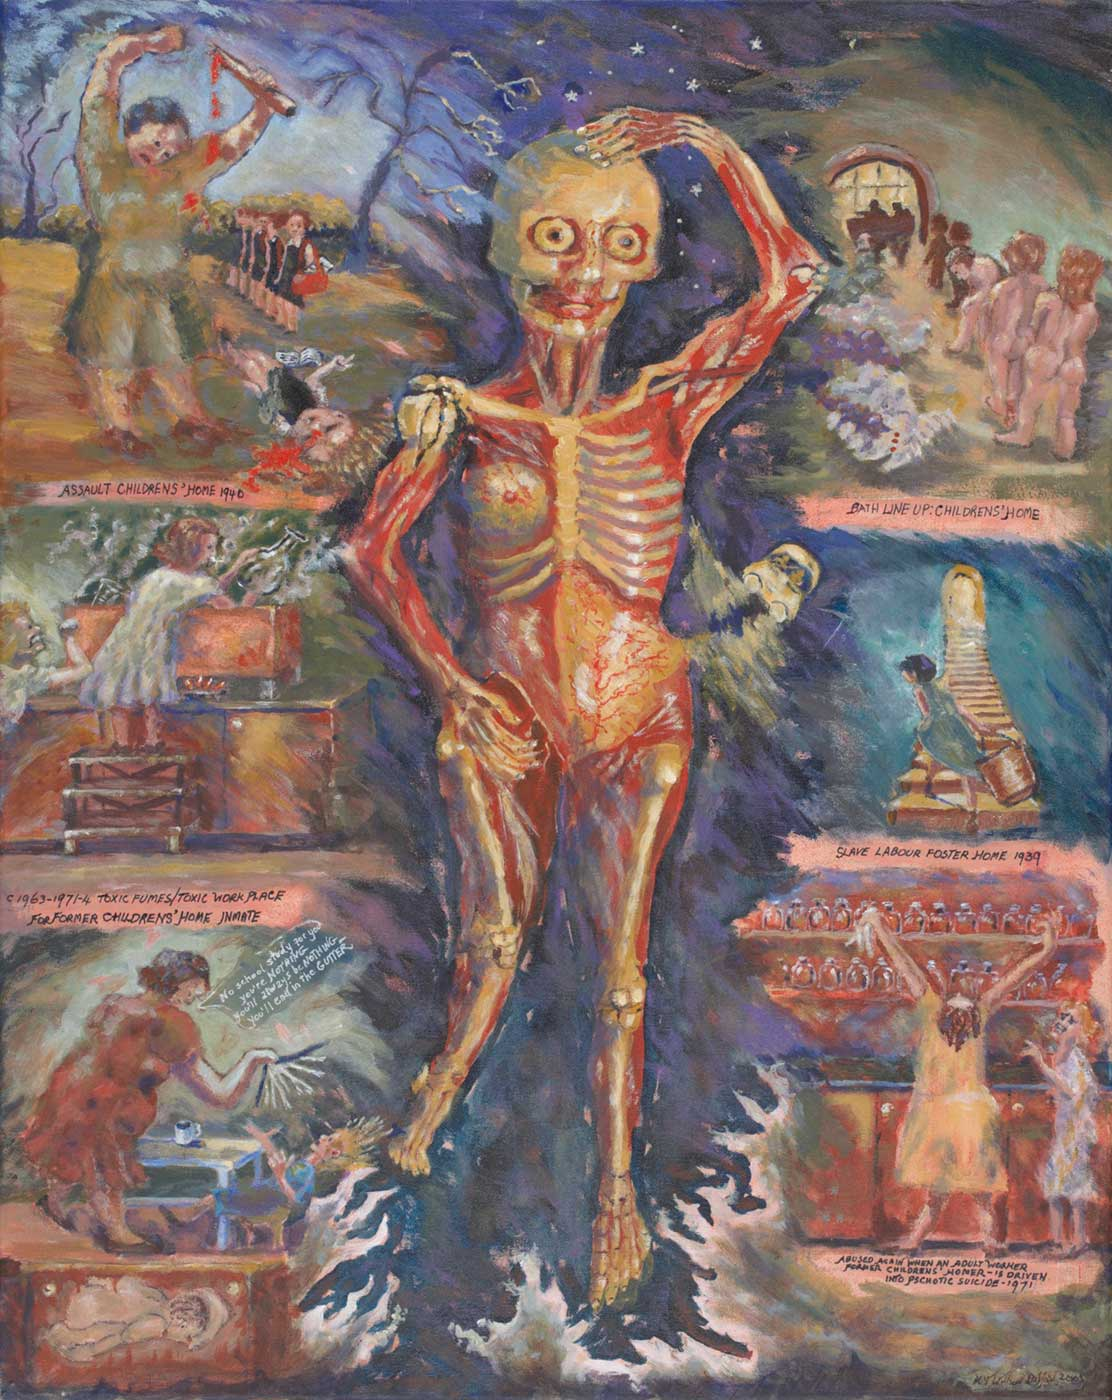 Photograph of a painting showing a central skeleton with its left arm raised and with hand resting on the skull. Some muscles and tissues and the eyes are visible. Various scenes are depicted around the skeleton. - click to view larger image